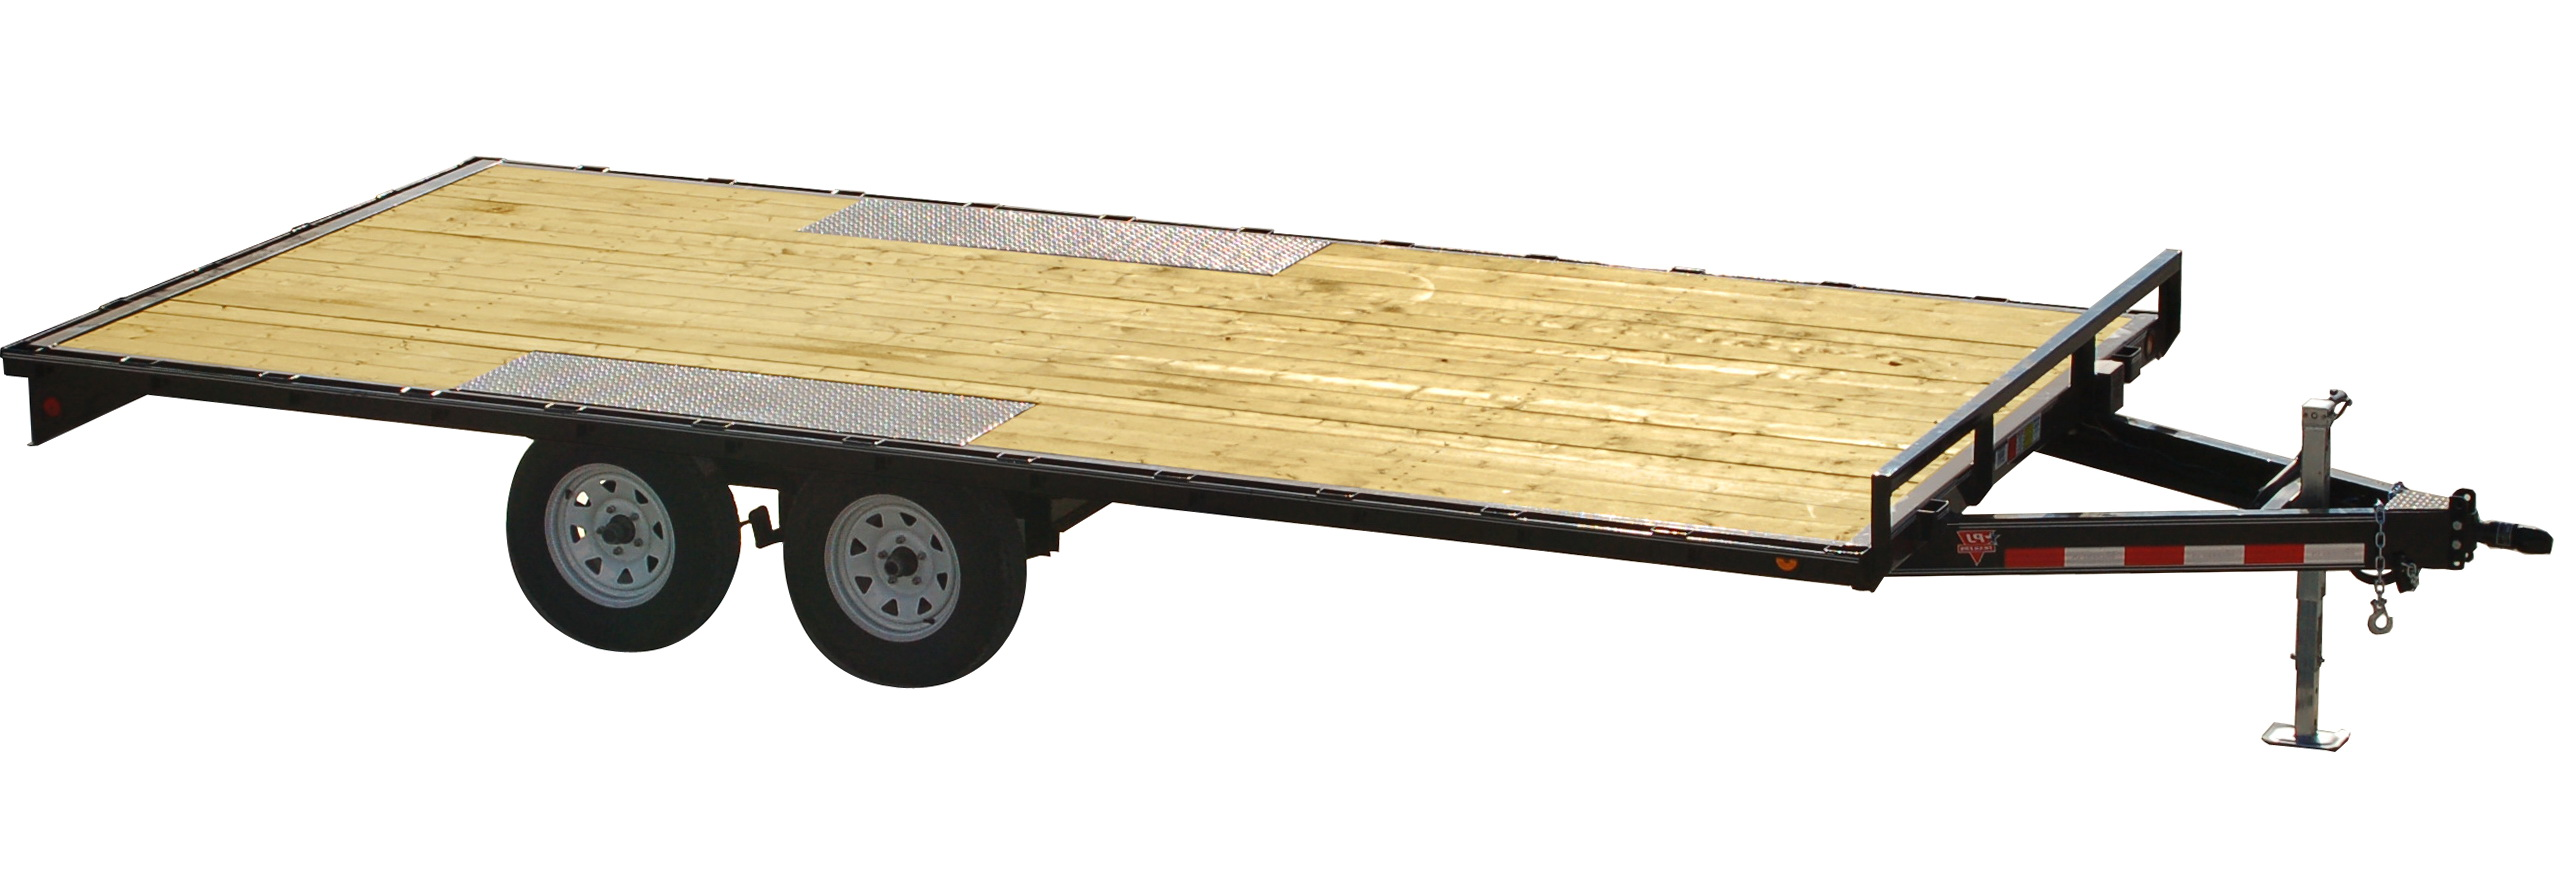 Deck Over Trailers For Sale In Nc